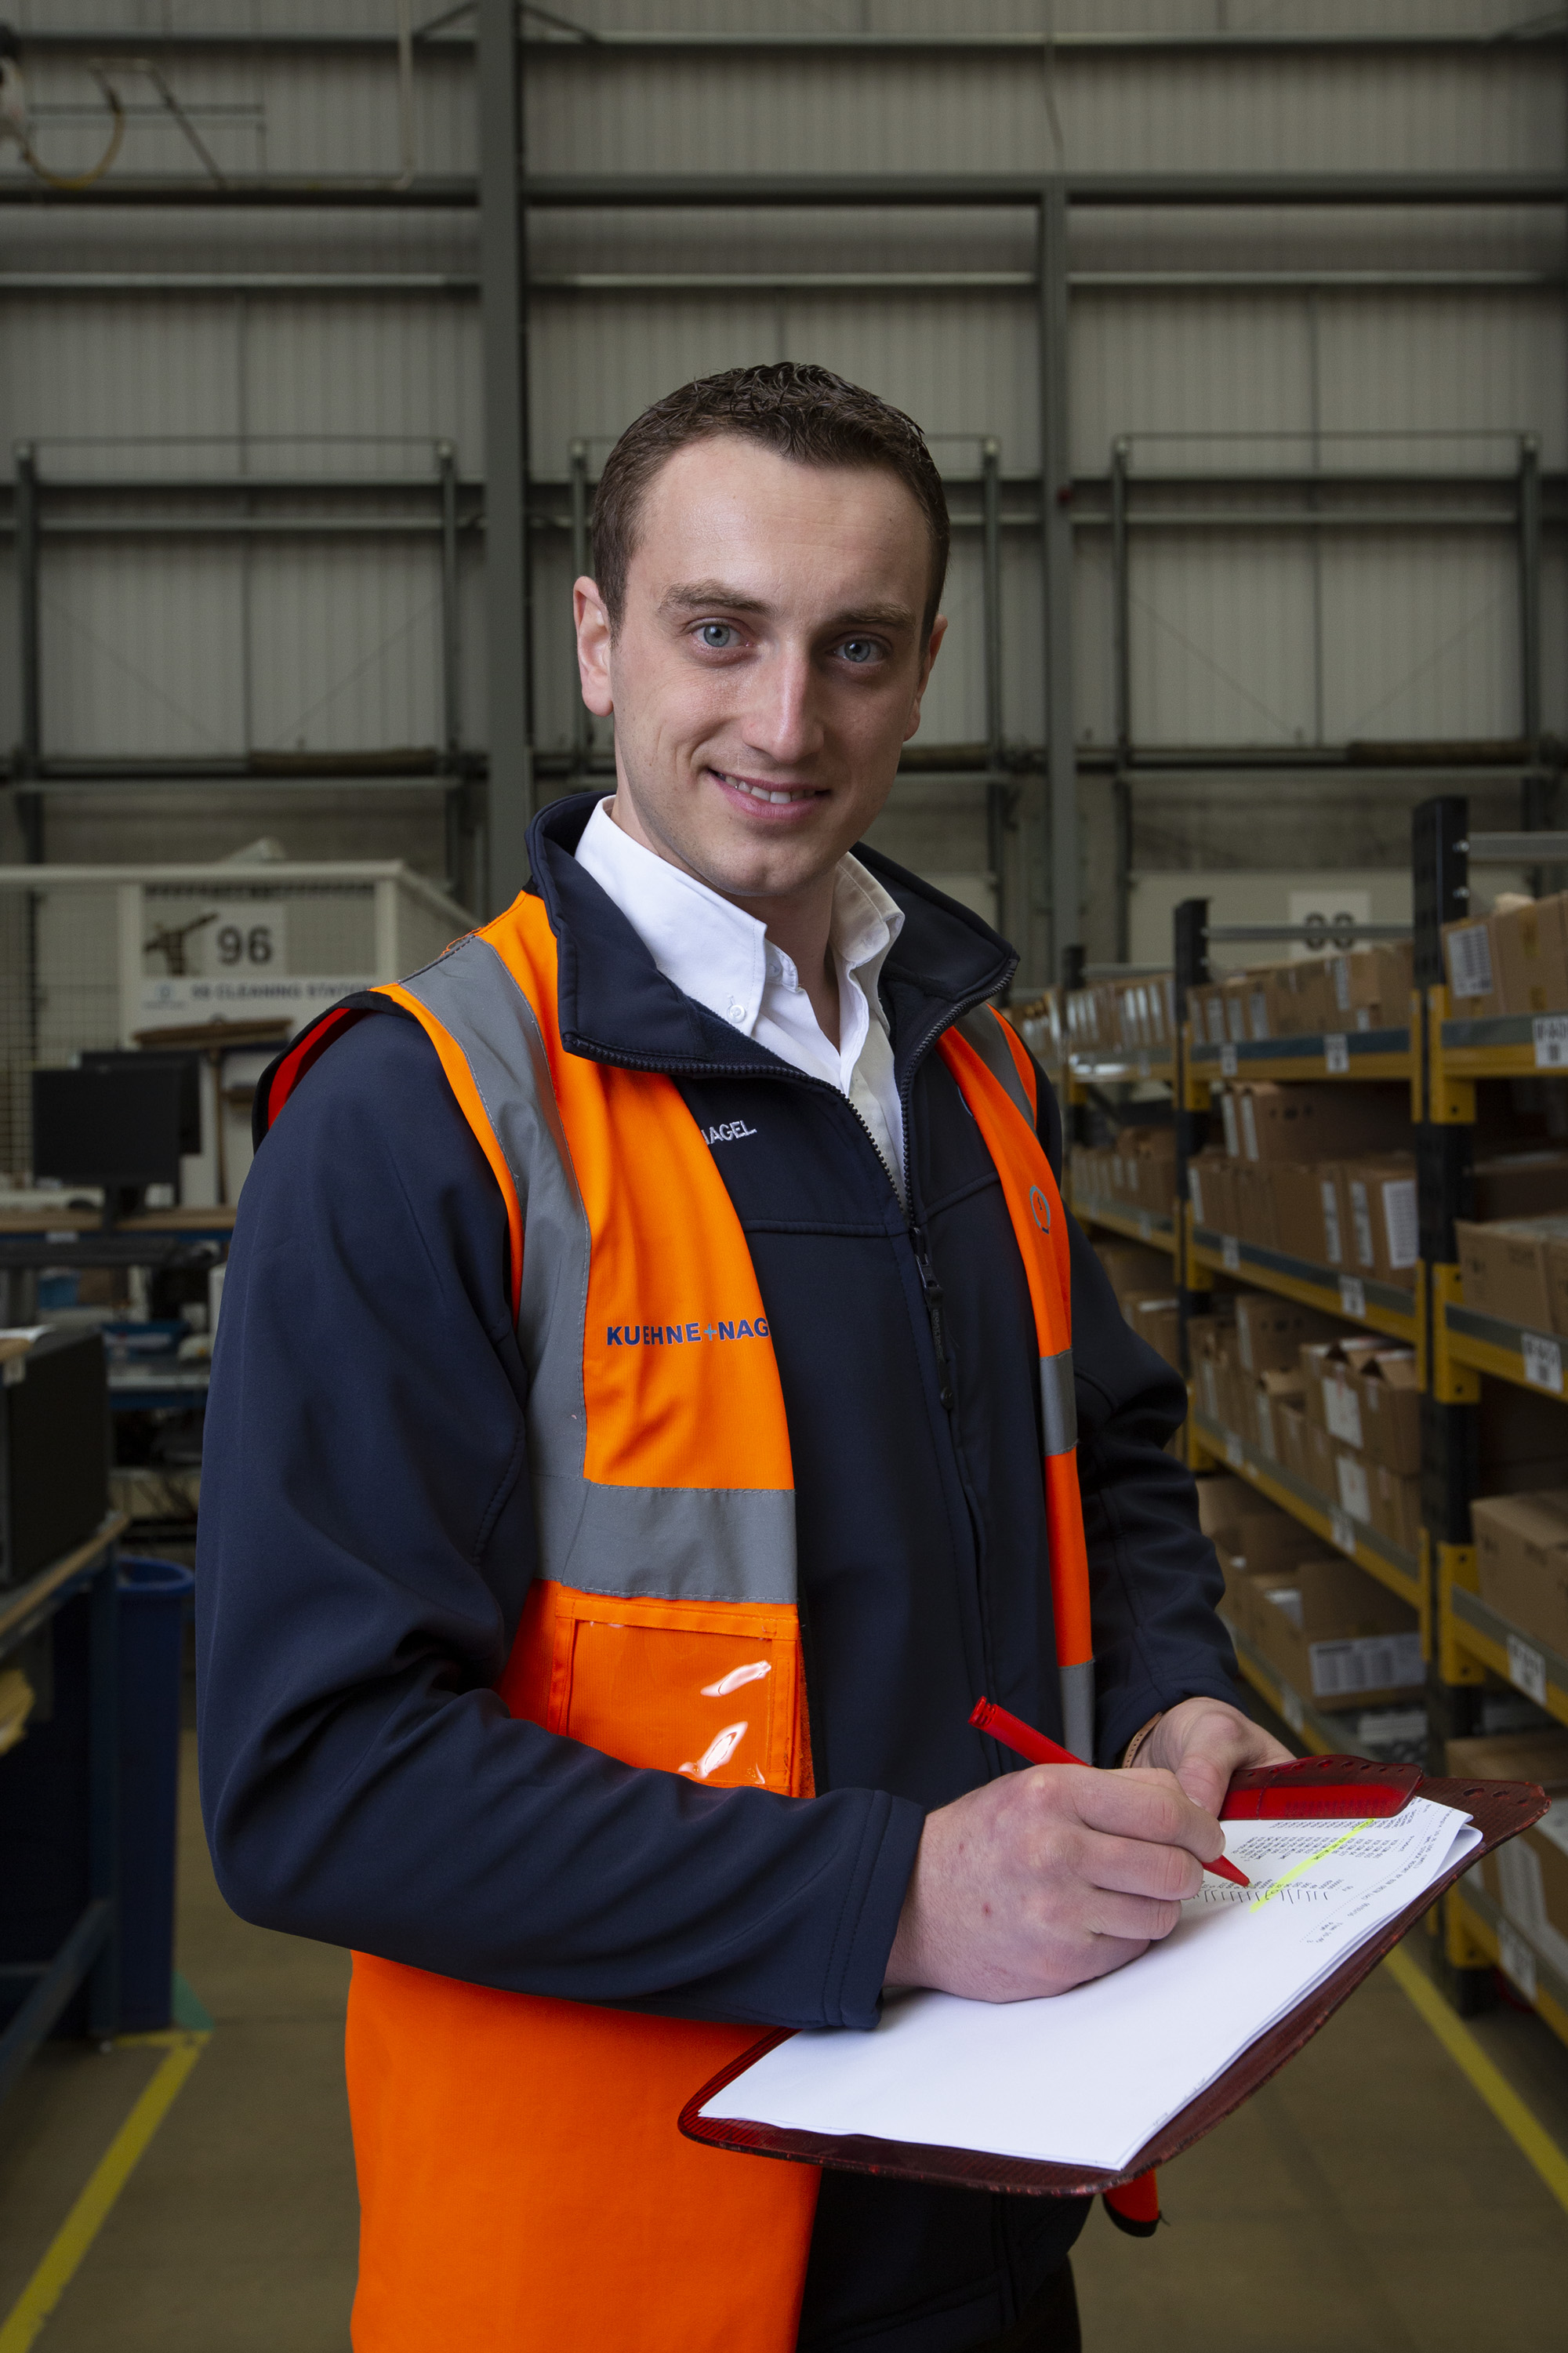 warehouse-photographer-portrait-london-uk-logistics.jpg